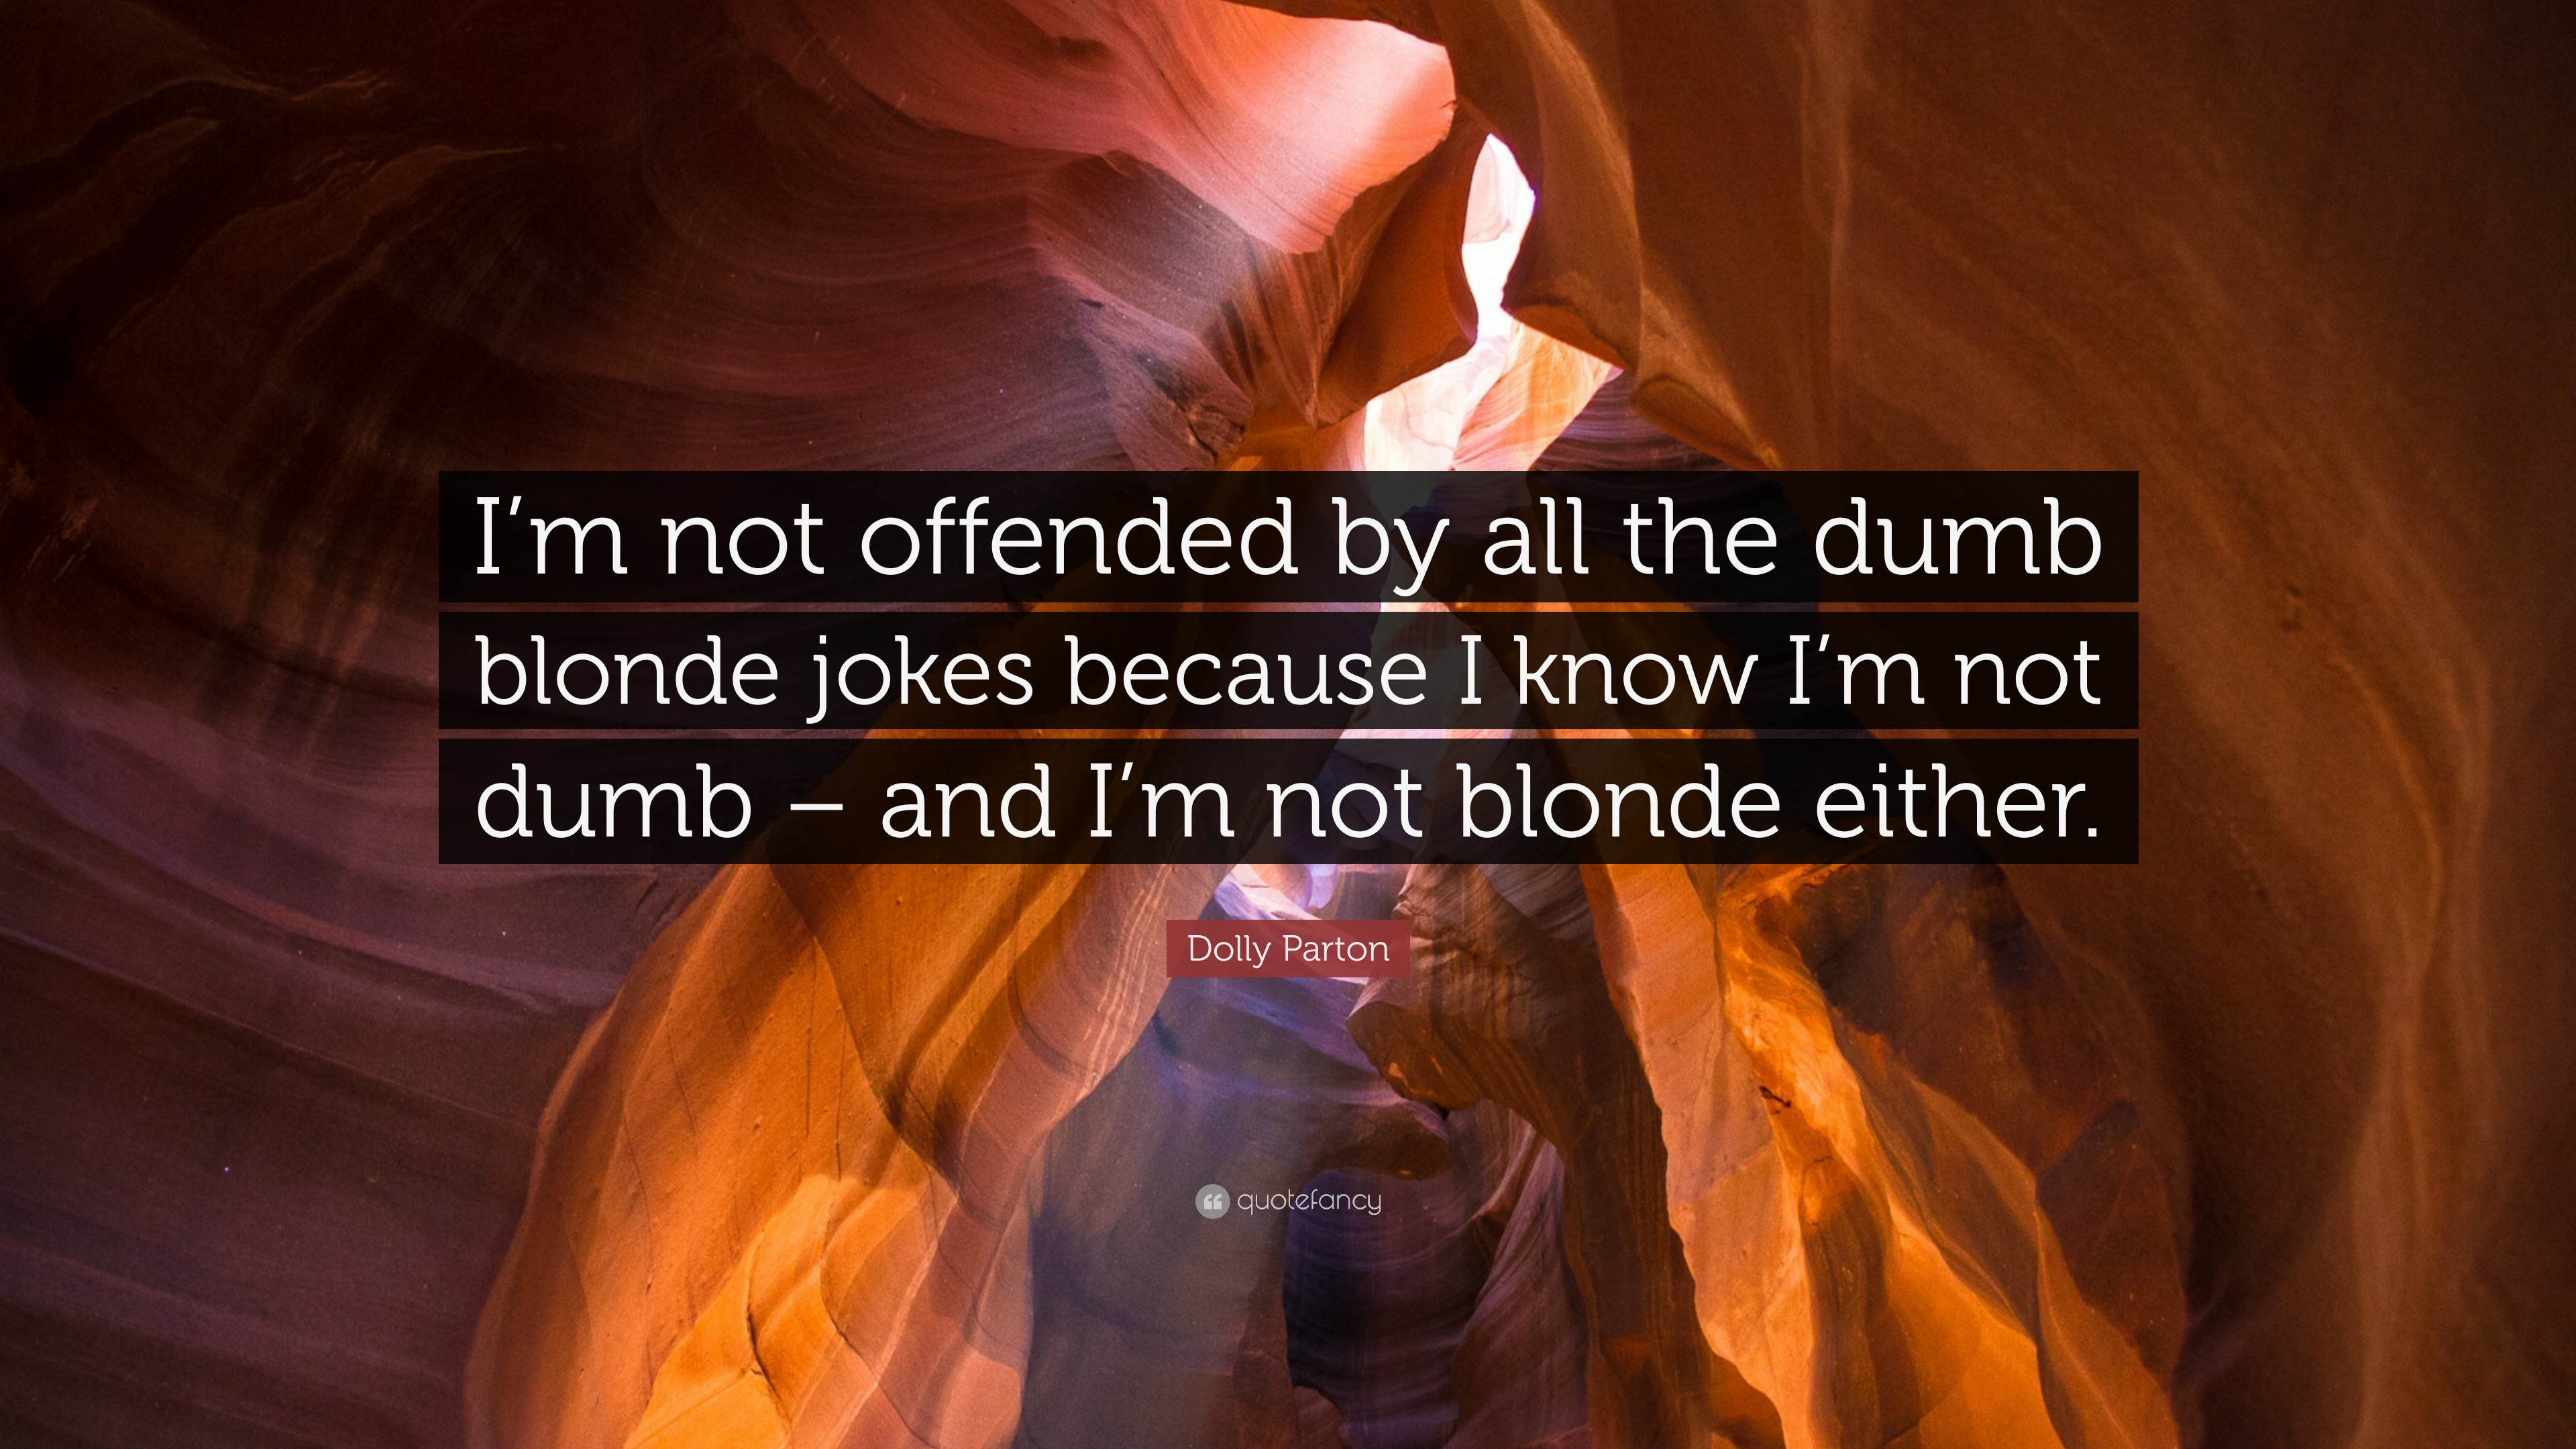 Image of: Dolly Parton Quote im Not Offended By All The Dumb Blonde Jokes Quotefancy Dolly Parton Quote im Not Offended By All The Dumb Blonde Jokes